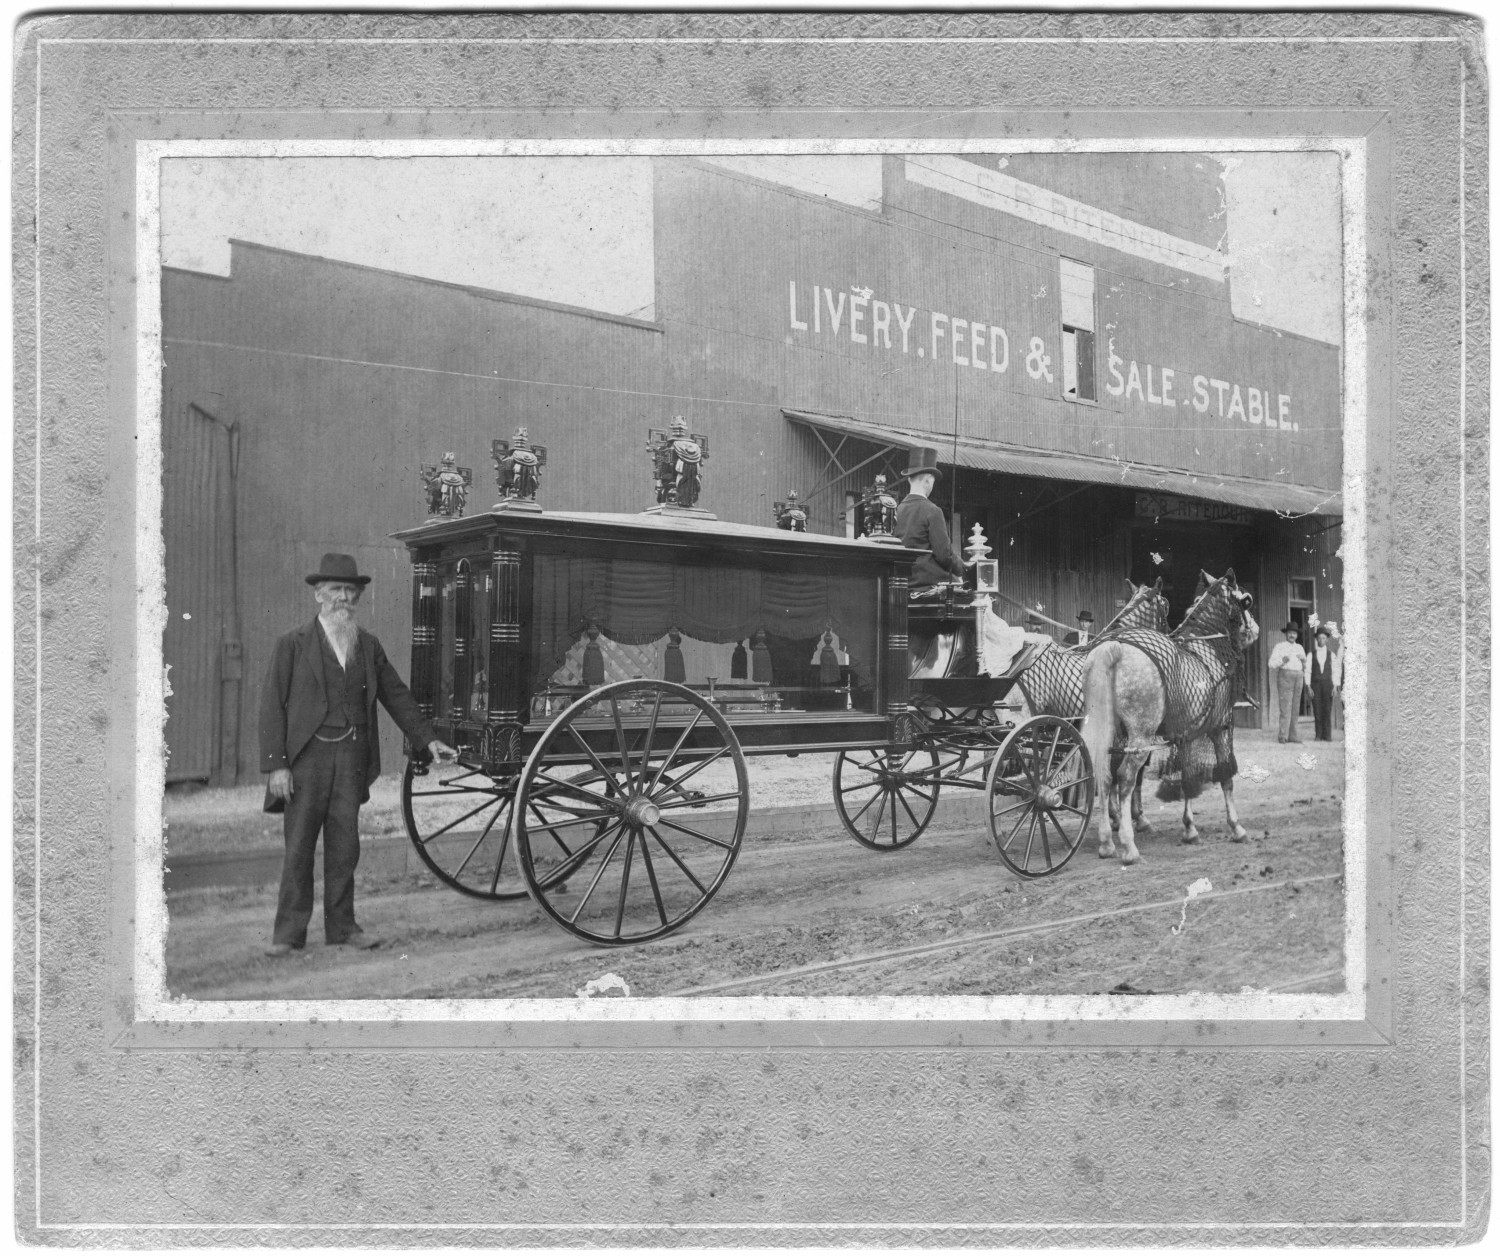 J.P. Crouch with Hearse, at C. R. Ritenour, Livery, Feed & Sale Store                                                                                                      [Sequence #]: 1 of 1